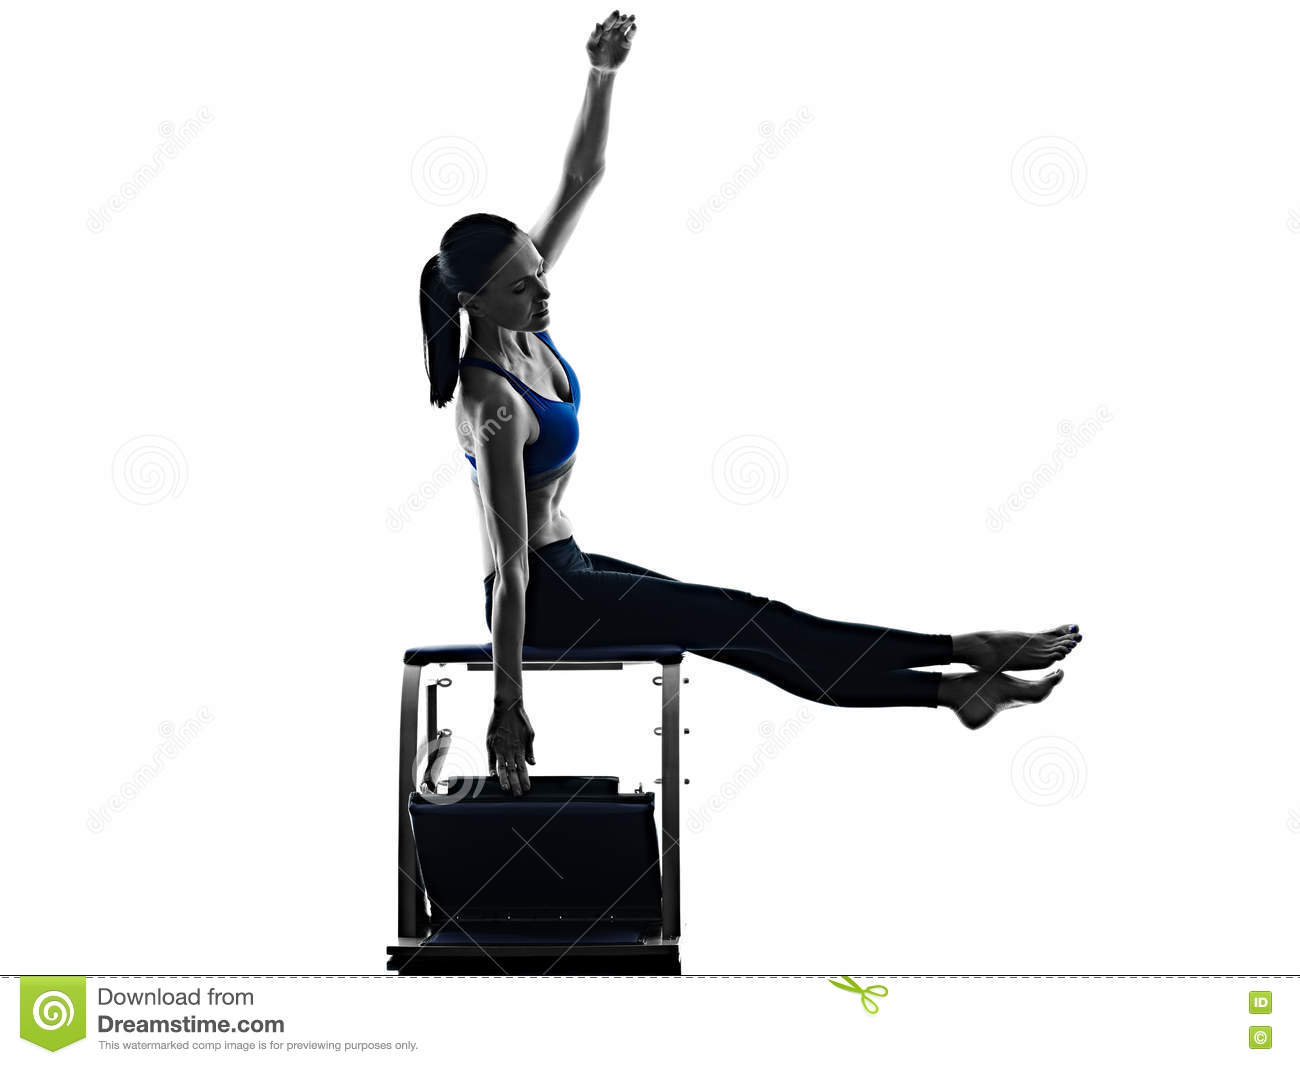 chair exercises at work walmart deck covers woman pilates fitness isolated stock photo